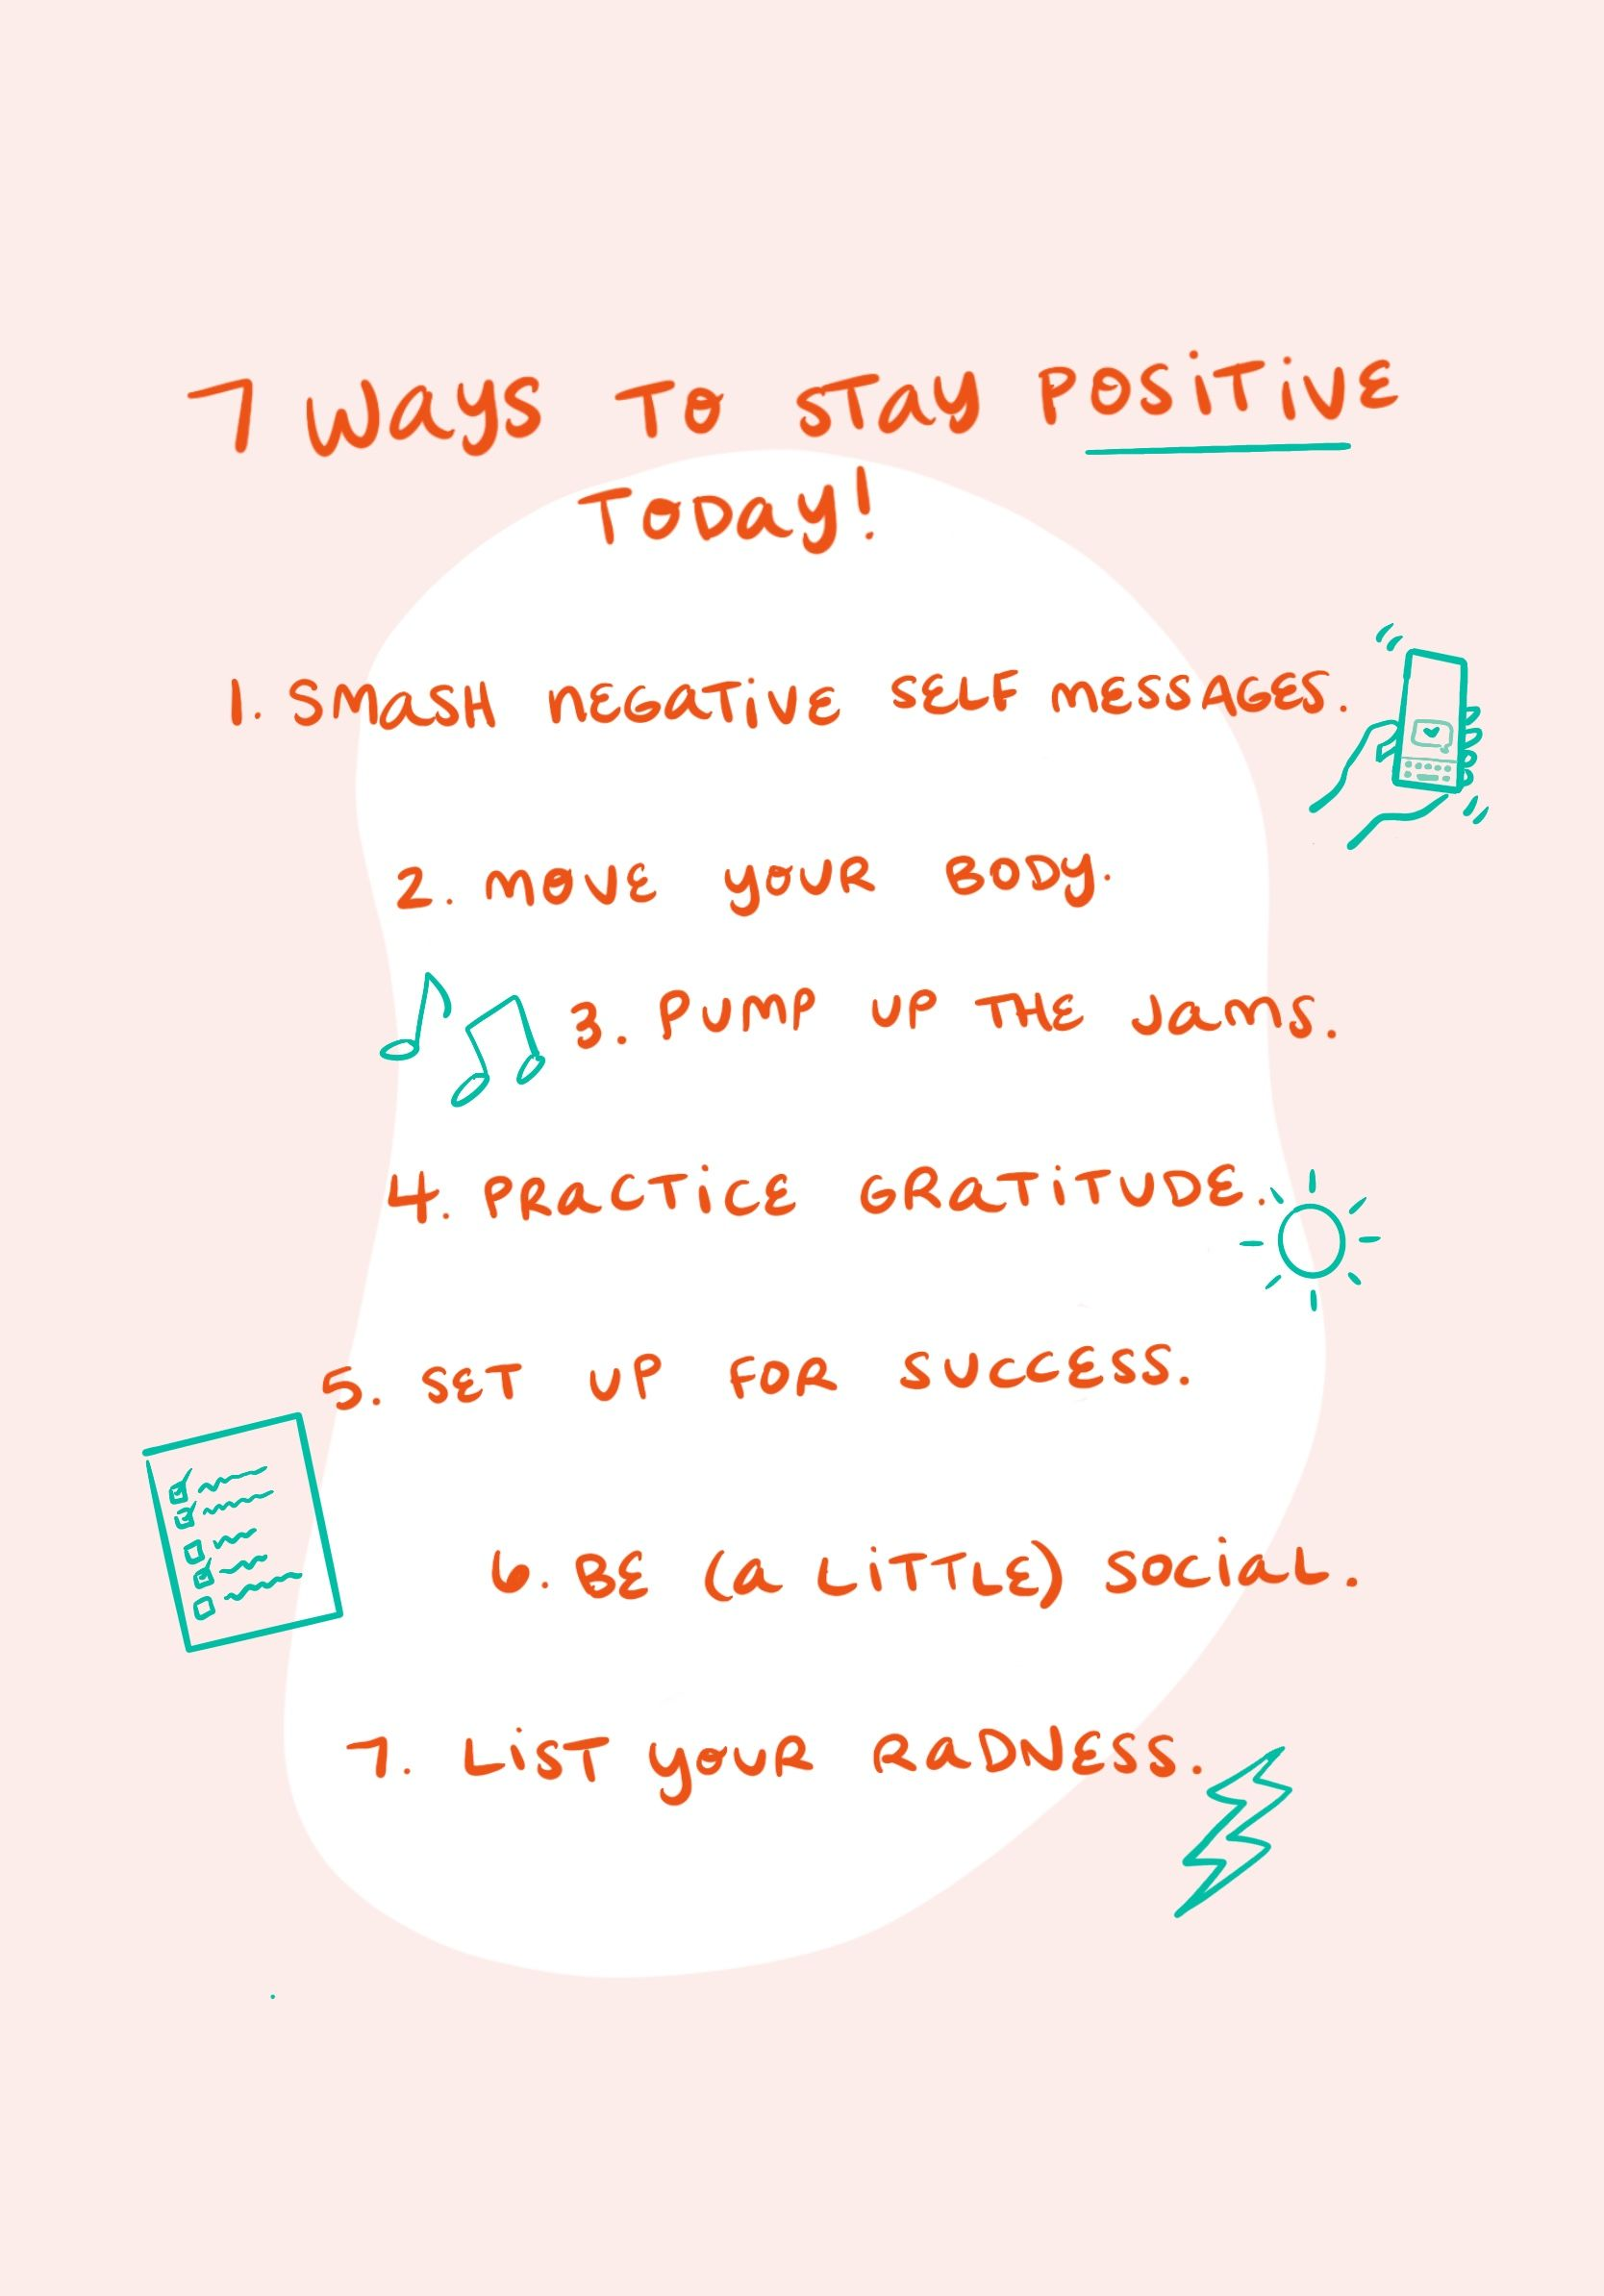 How to Stay Positive 7 Things You Can Do Today » Lovely